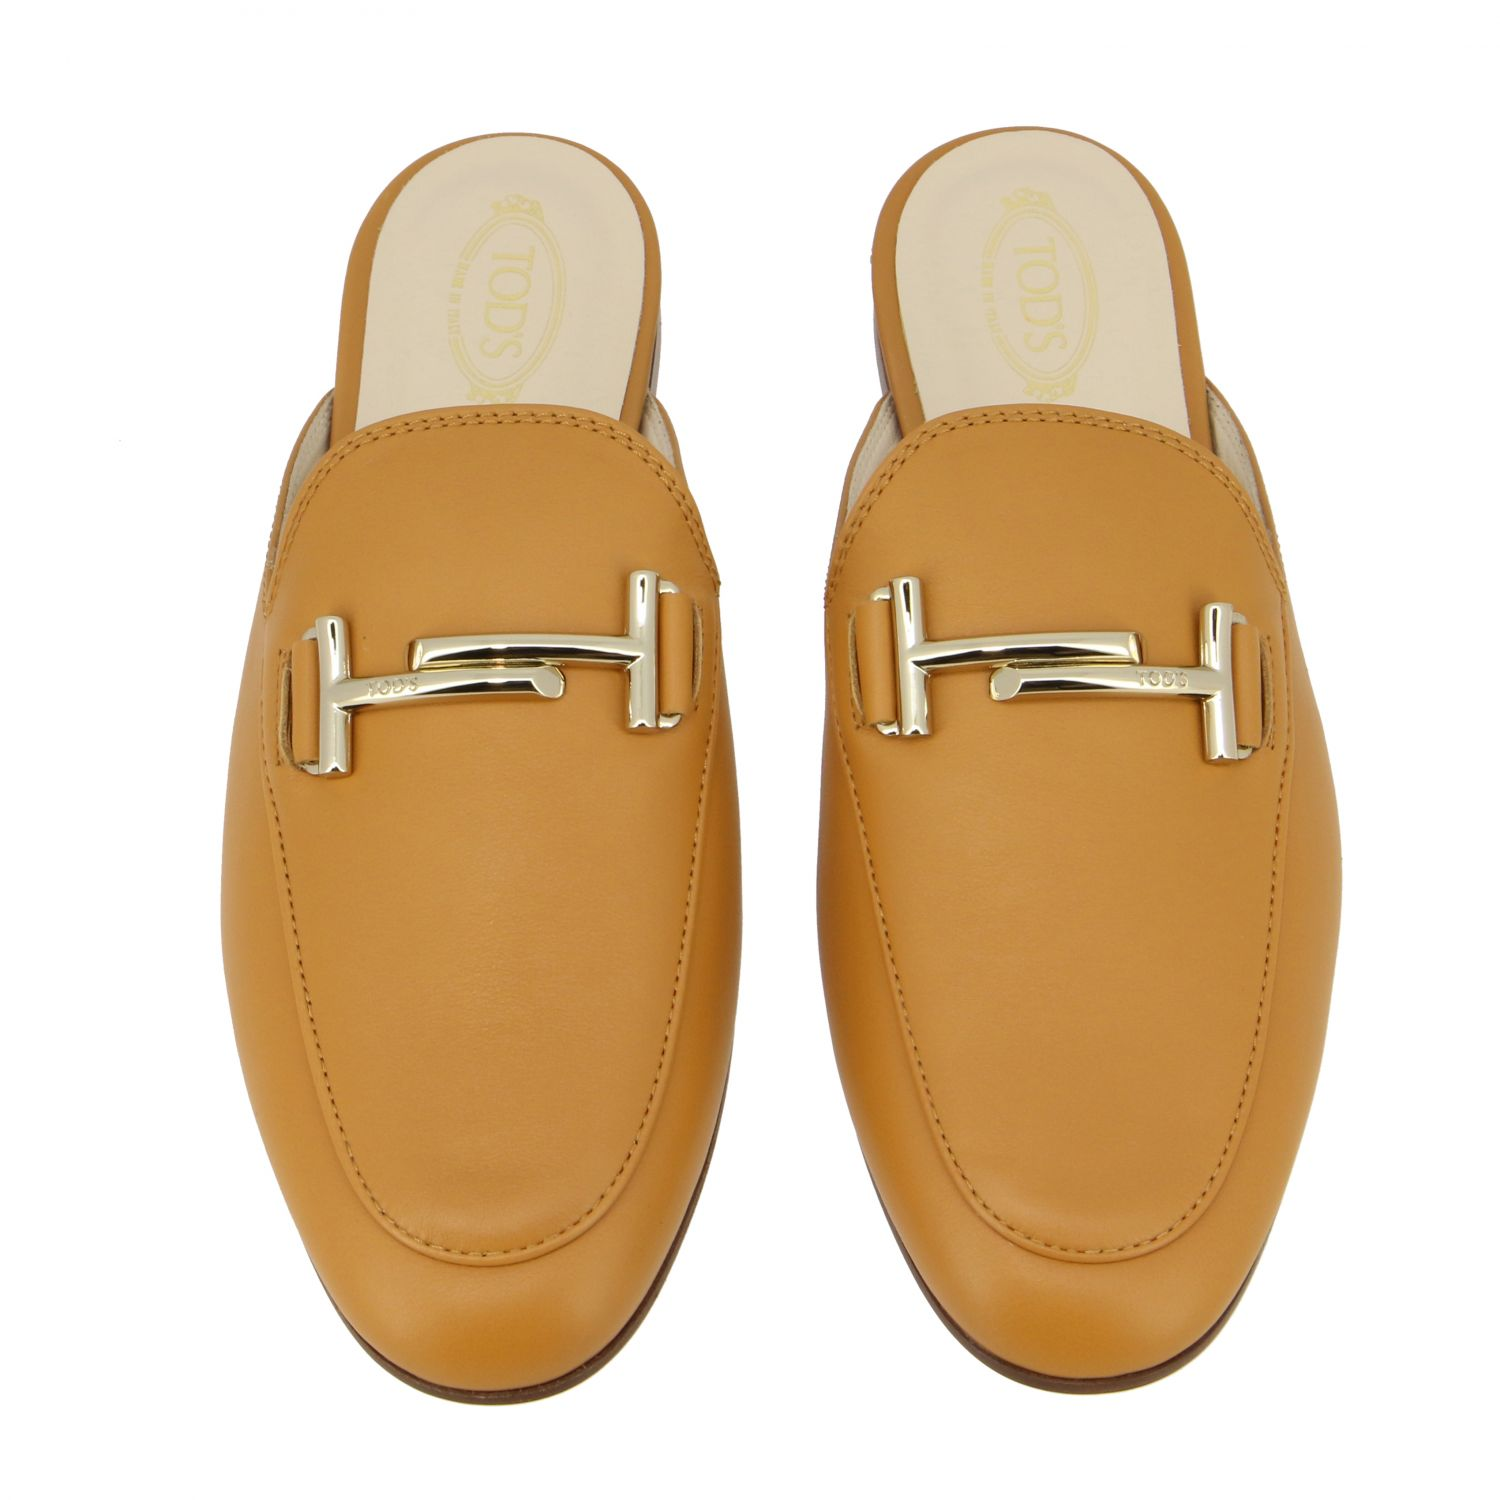 Sabot Tod's in pelle liscia con double T cuoio 3